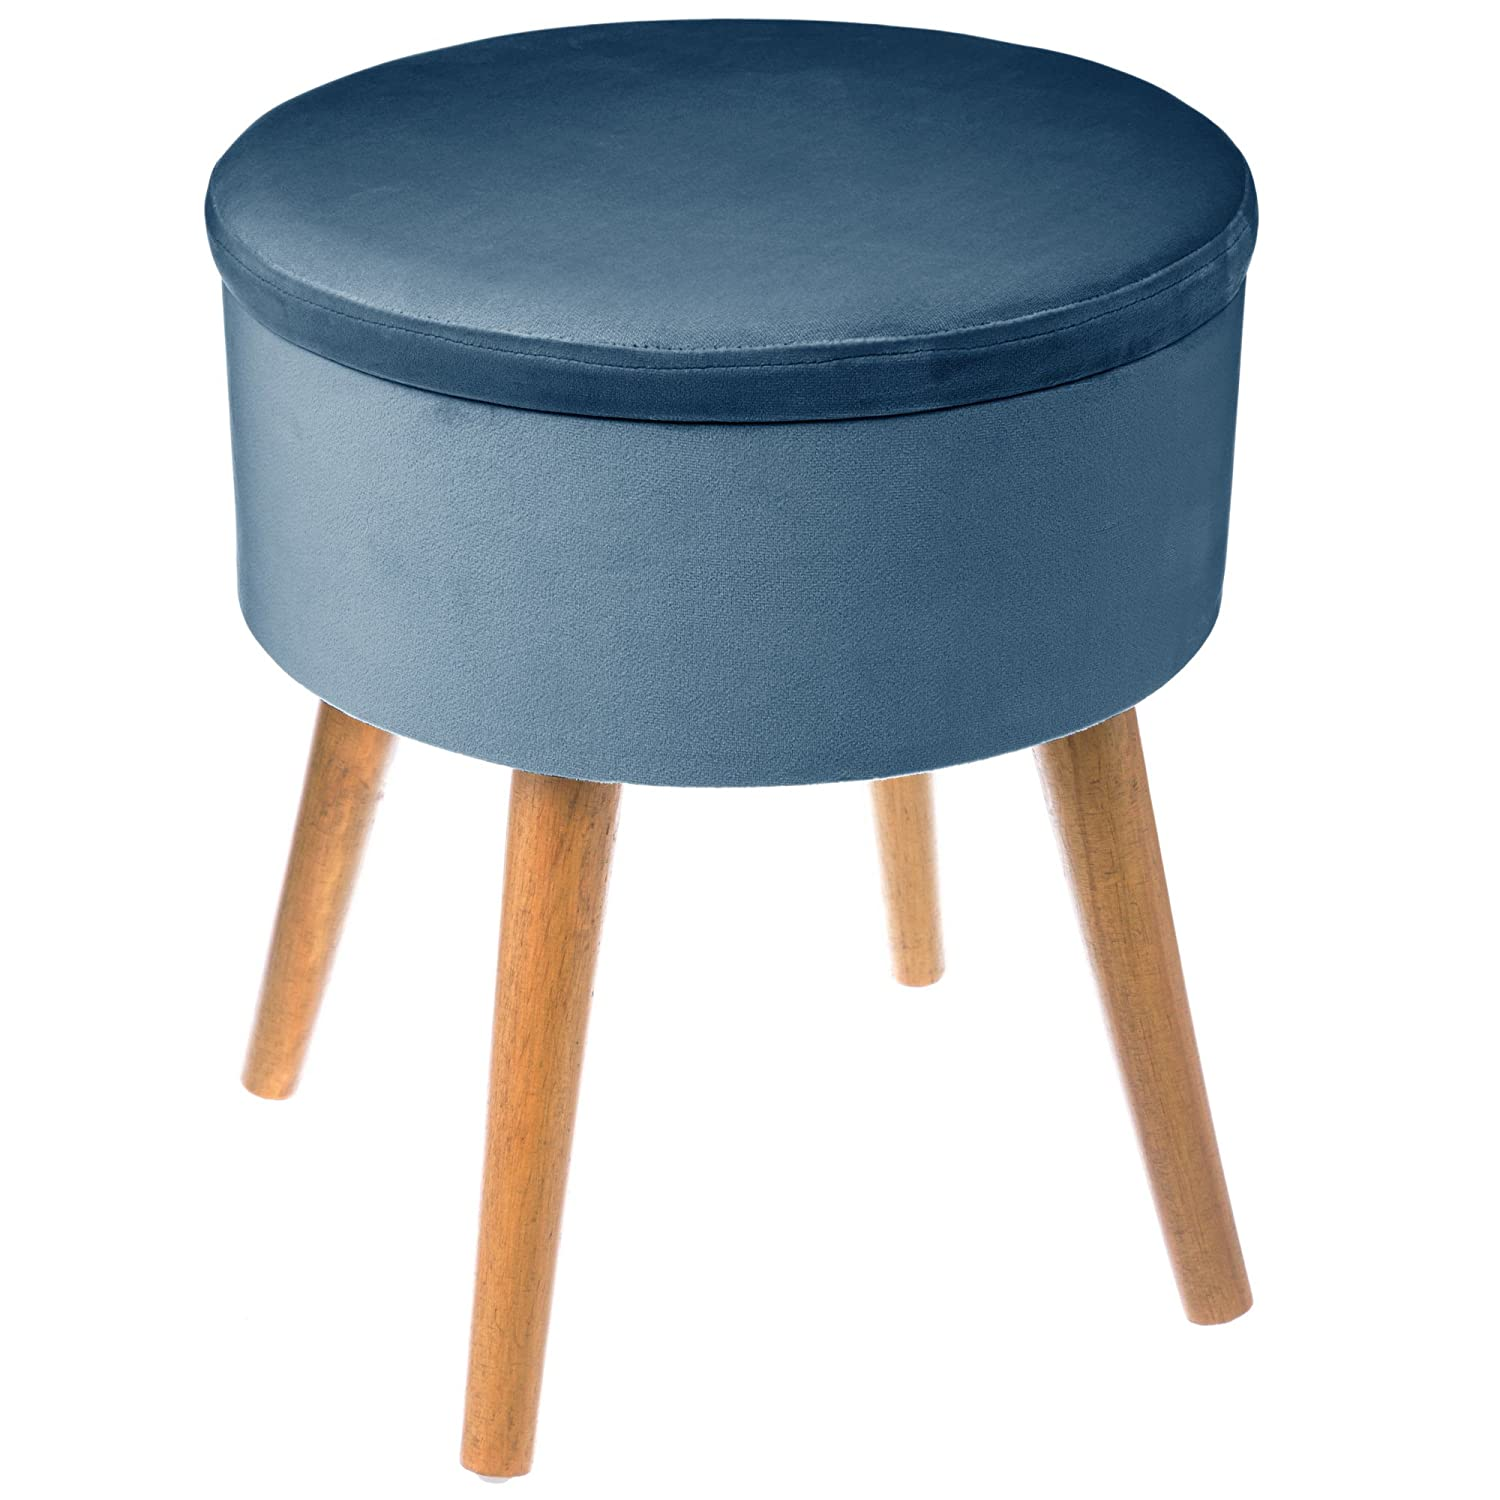 Marvelous Depotmania Large Round Pouffe Stool Storage Box Scandinavian Style Colour Air Force Blue Velvet Look And Feel Gmtry Best Dining Table And Chair Ideas Images Gmtryco